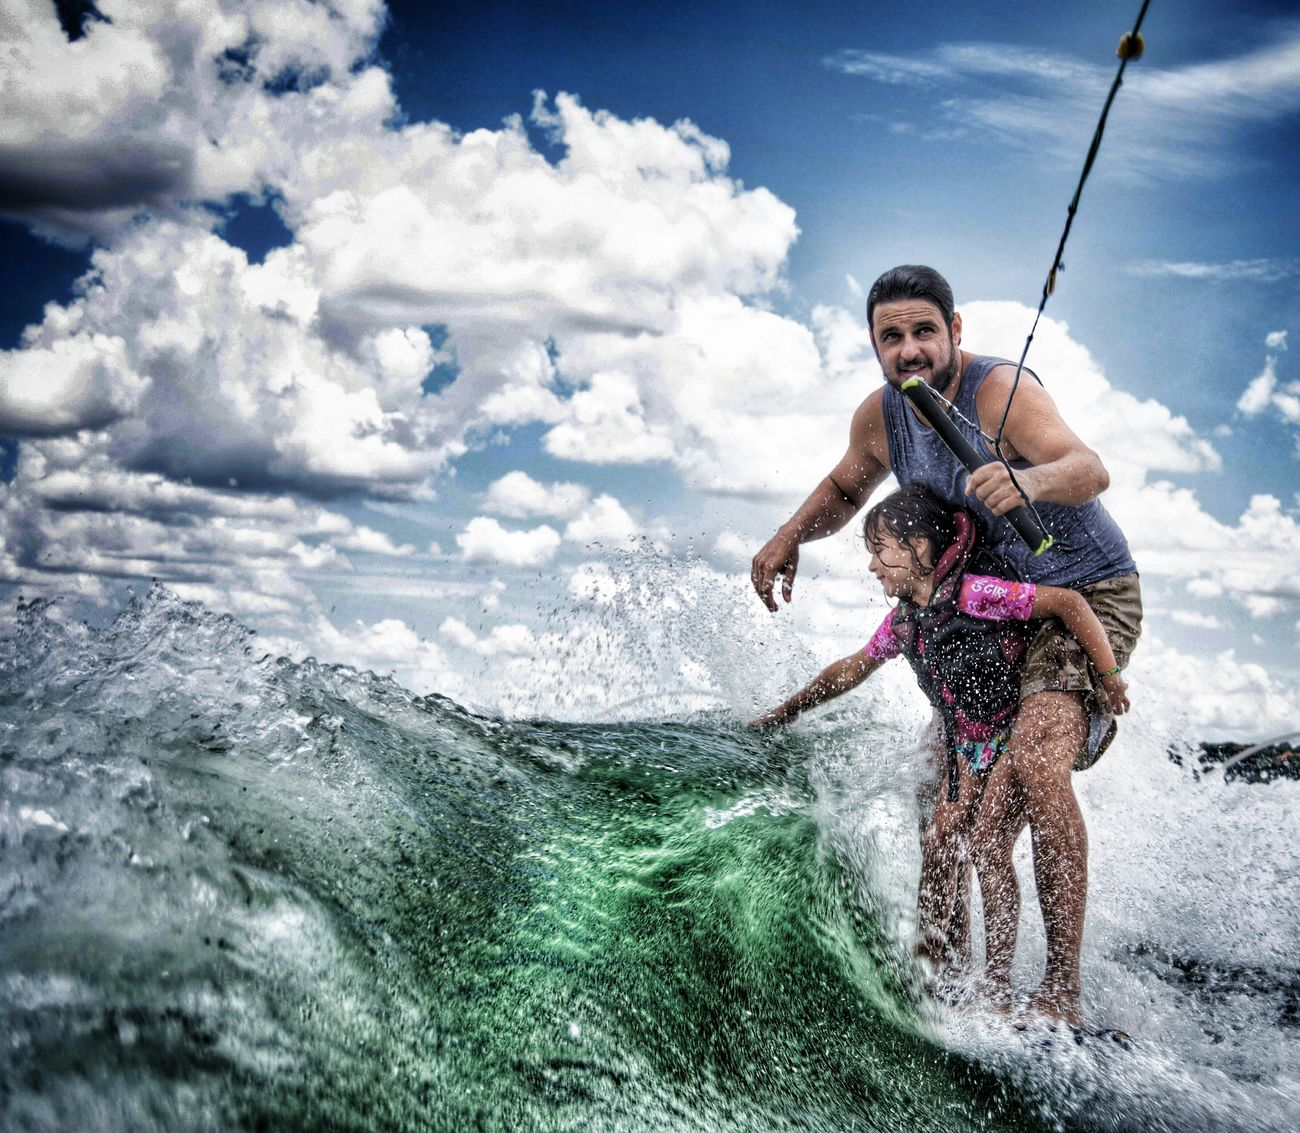 Surfing Wakesurfing Wakesurf Lago Paranoa Brasília Brazil Sky Sport Cloudscape Water Cheerful People Portrait Fun Outdoors Multi Colored Leisure Activity Summer Travel Destinations Child Looking At Camera Cloud - Sky Vacations Surf Wakeboarding